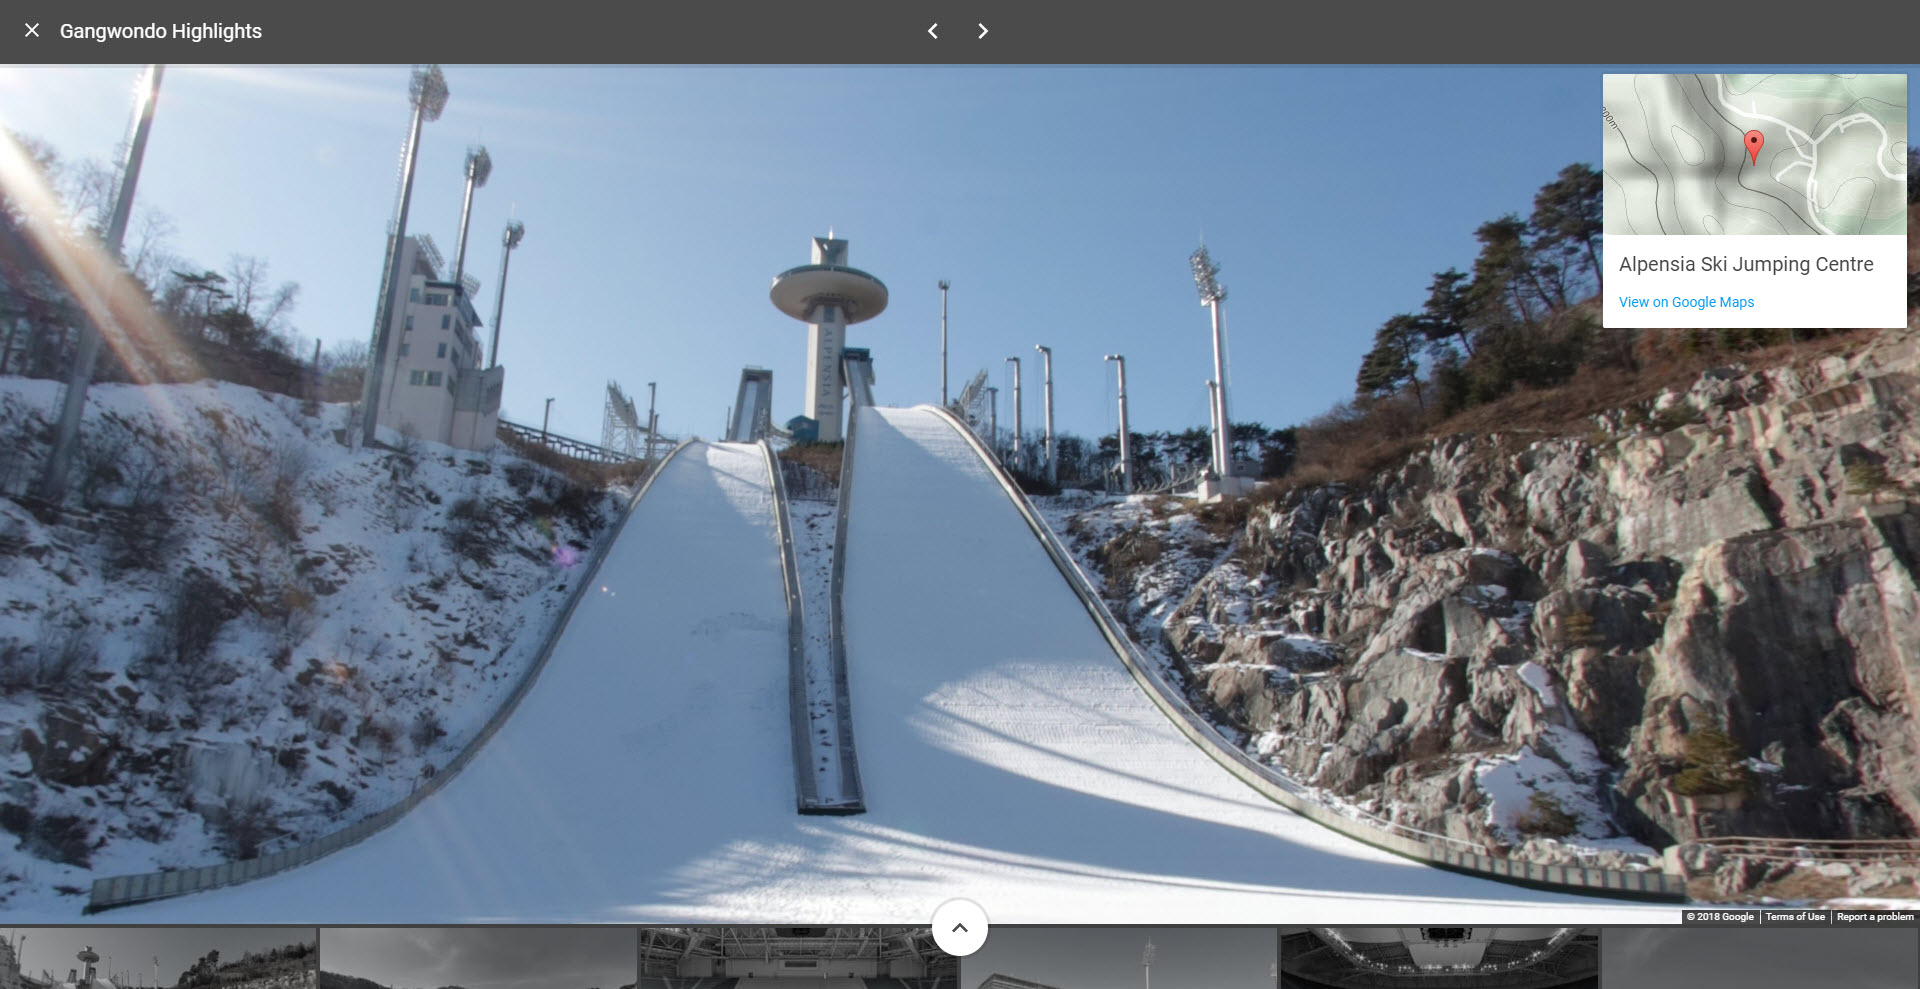 Check out the 2018 Winter Olympics on Google Street View